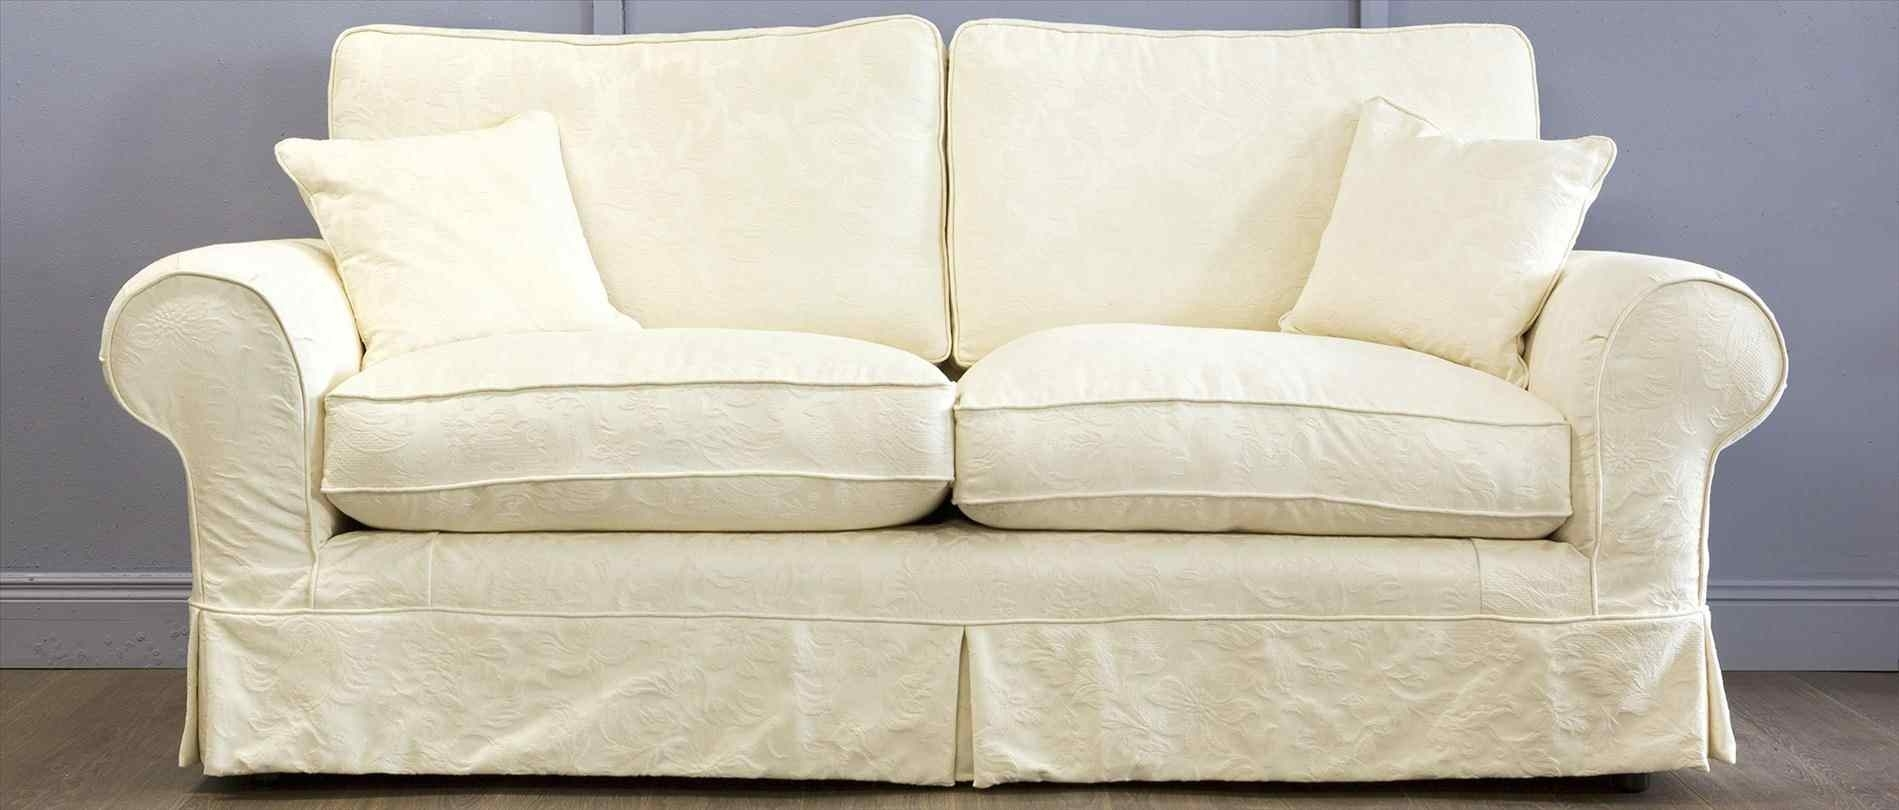 sofa cover fabric online bright house beds 10 best ideas sofas with washable covers